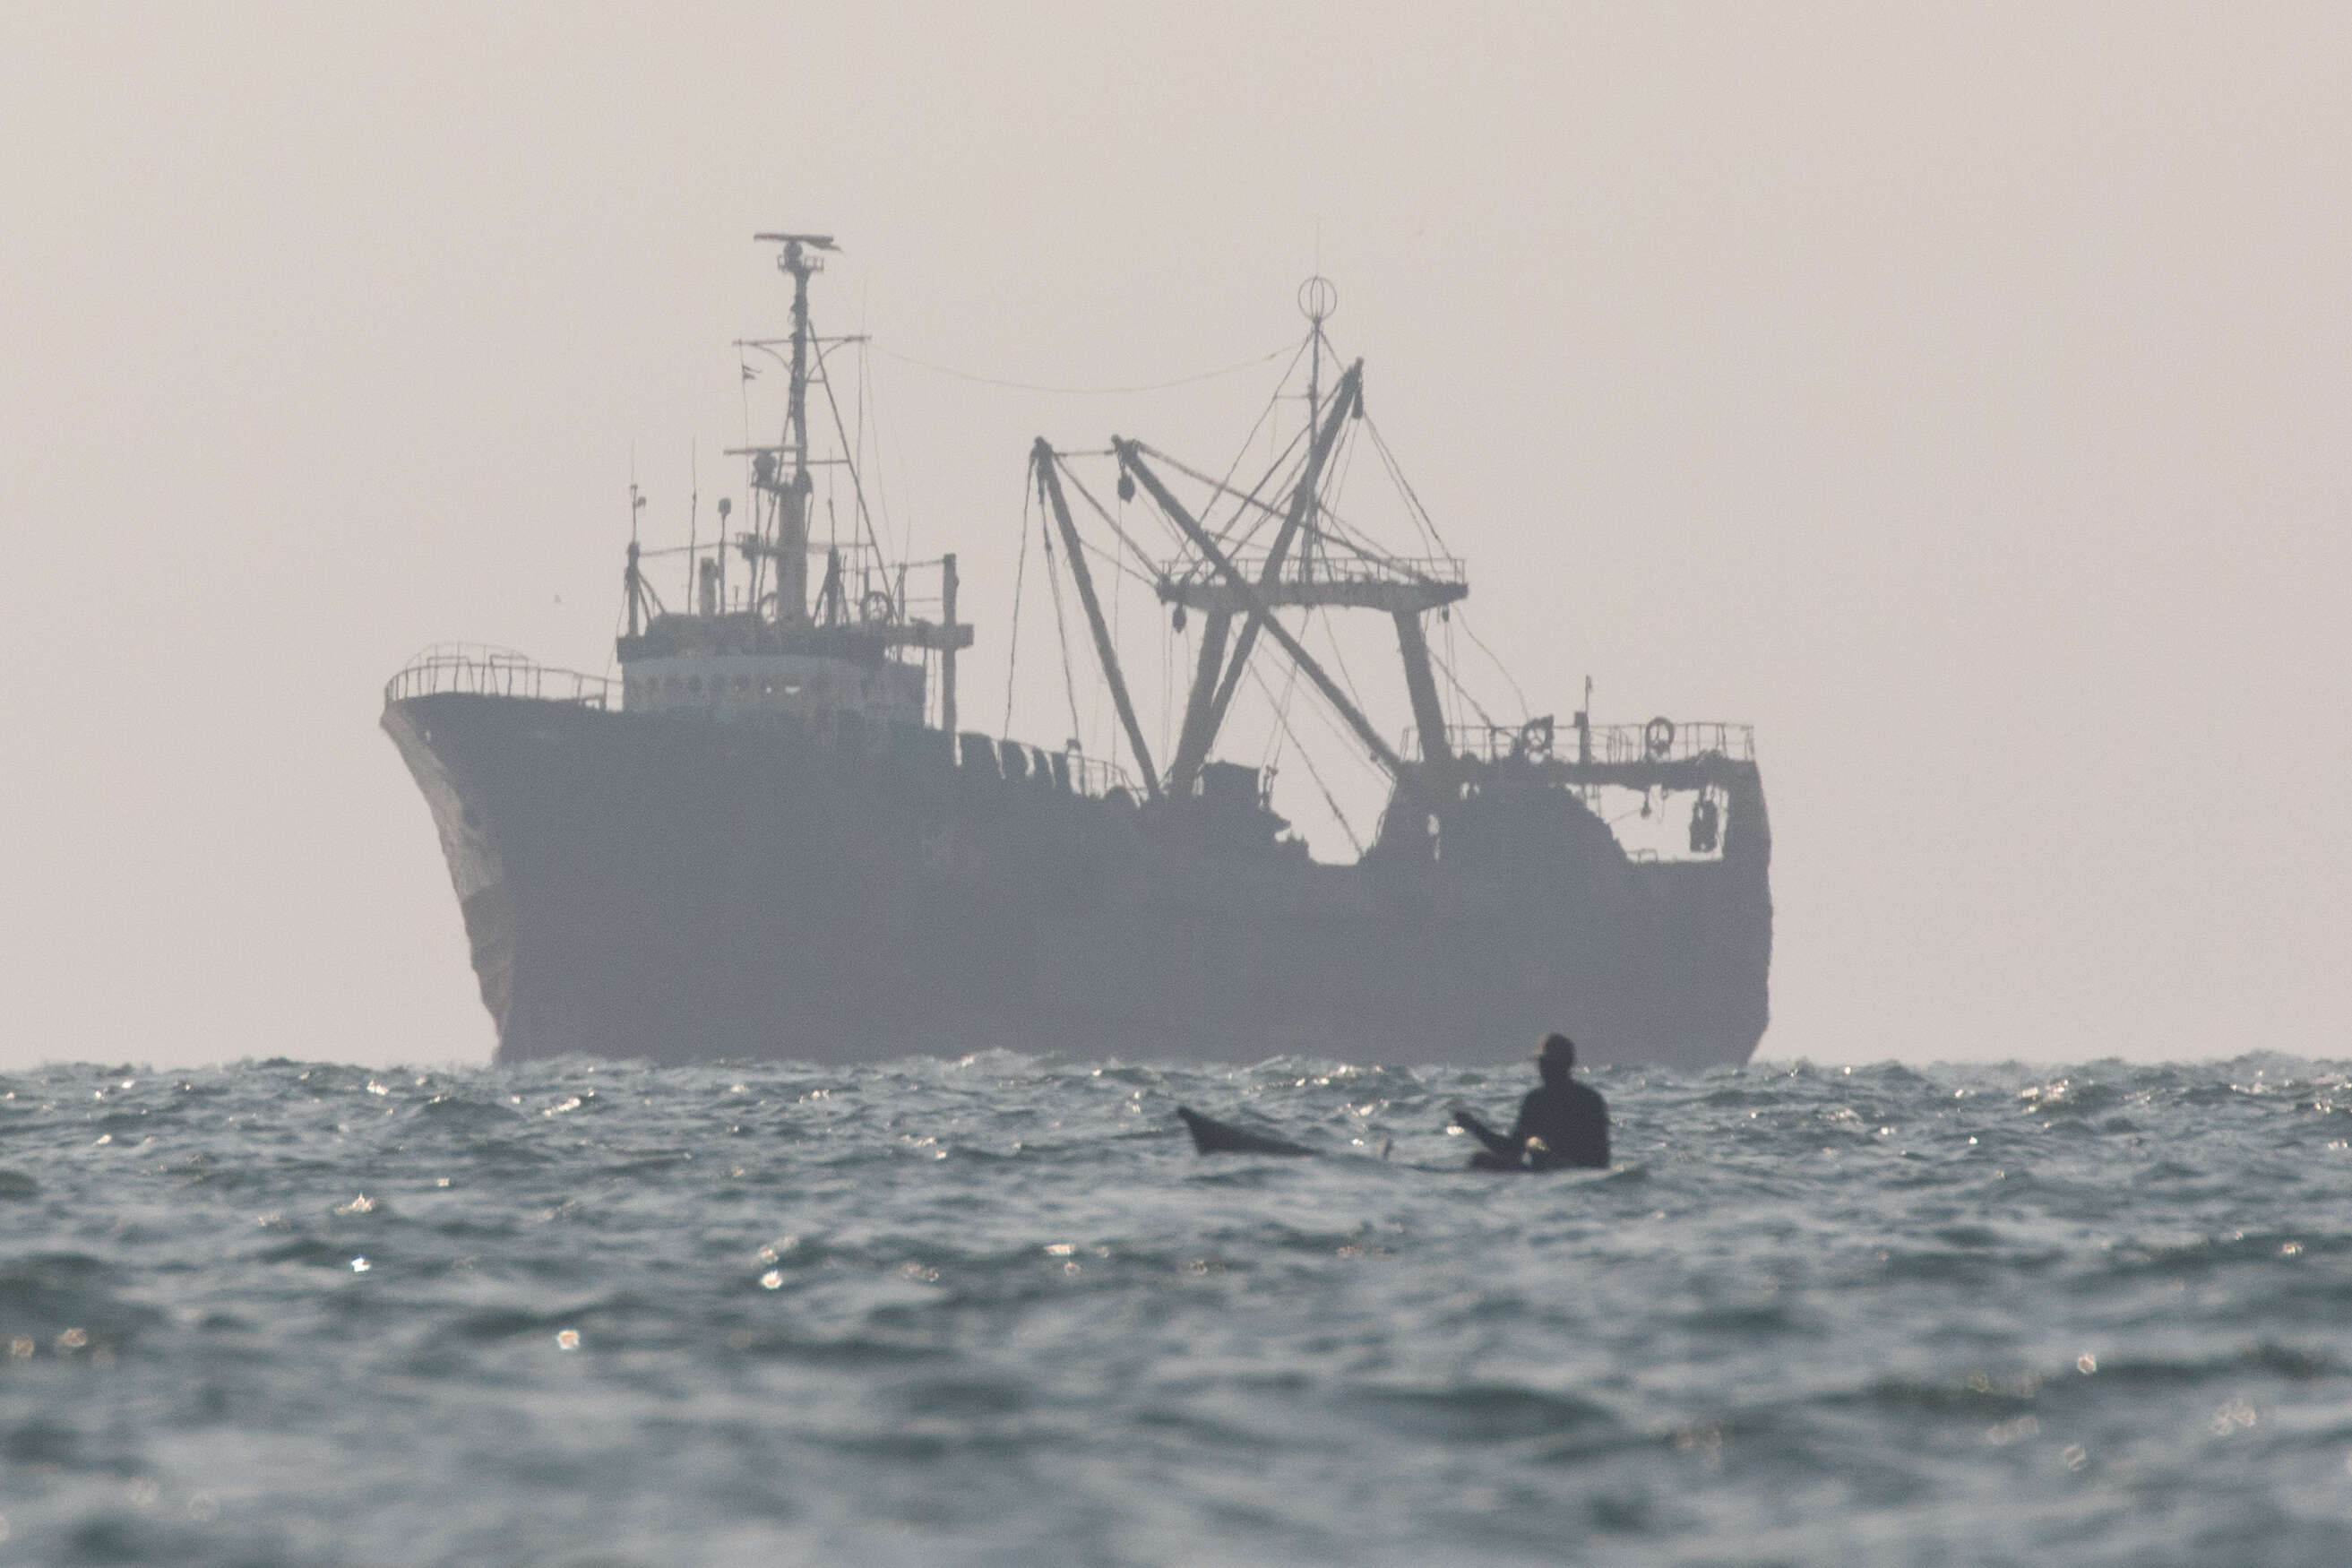 Fisherman dies trying to escape abuse aboard Chinese vessels fishing illegally in Somalia